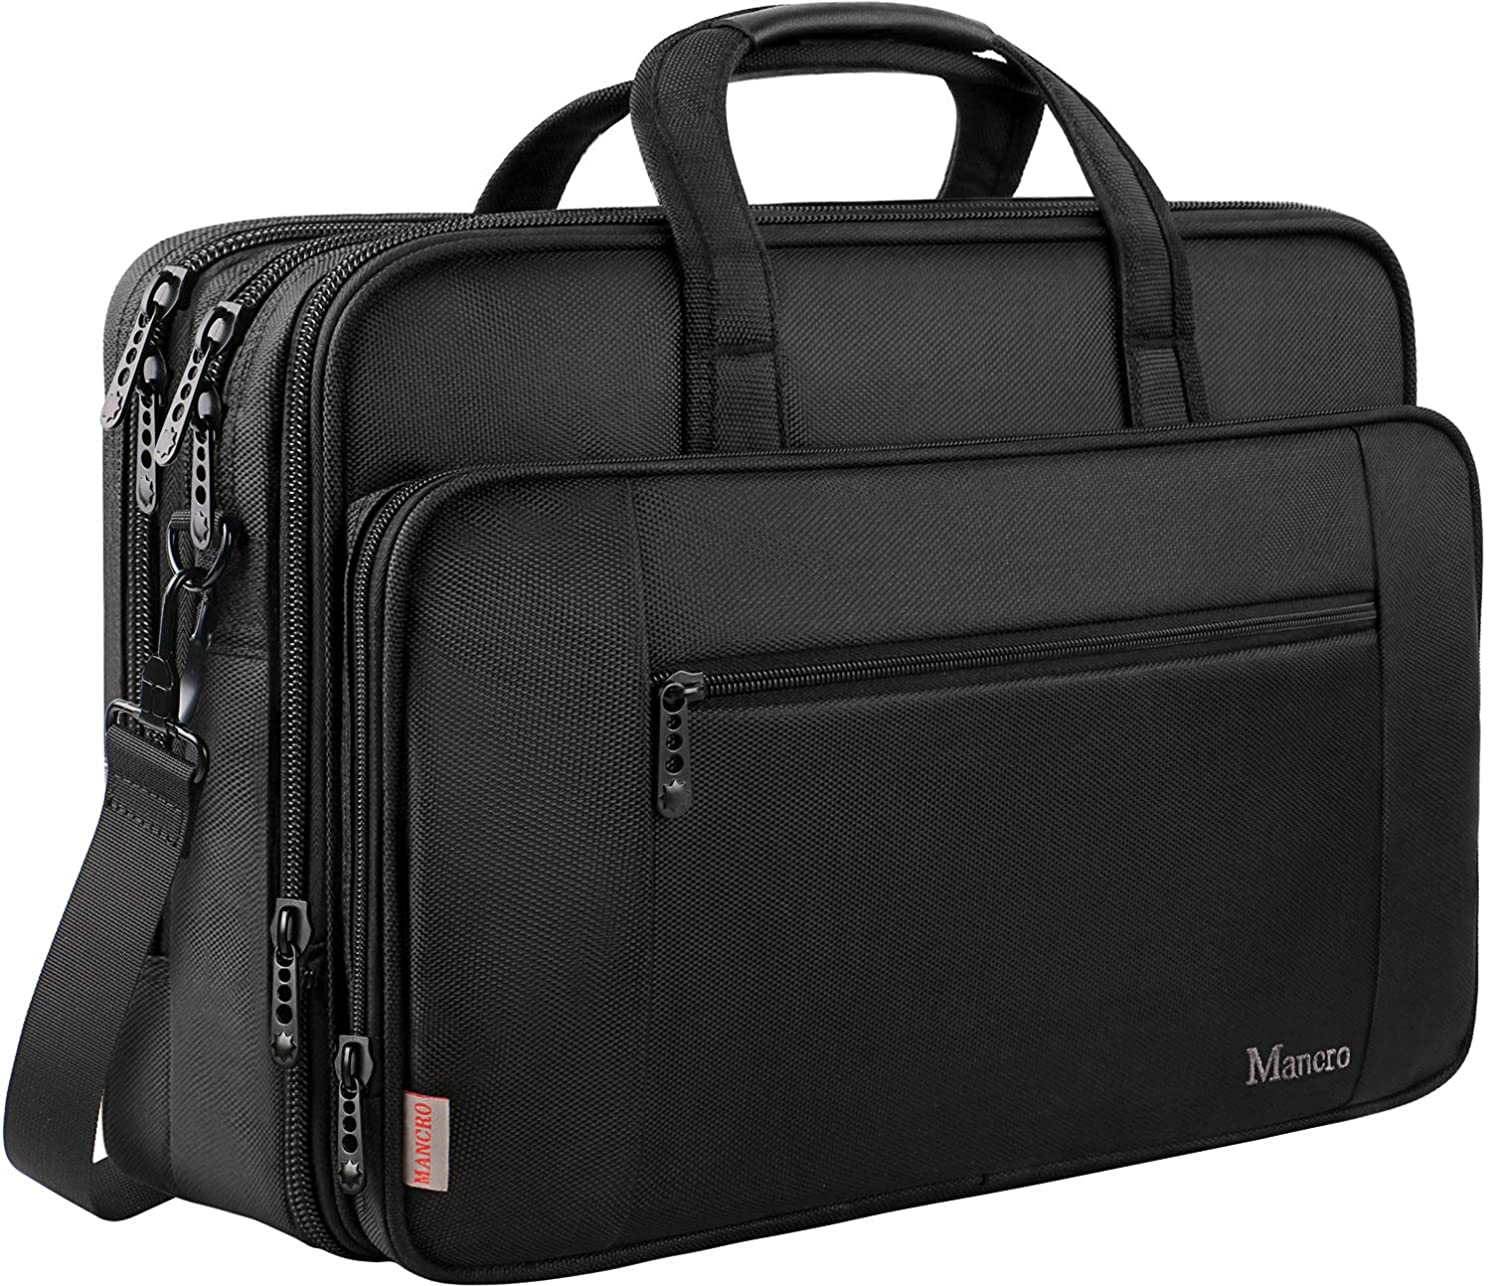 17 inch Laptop Briefcase for Men Women, Soft Business Bag, Big Computer Shoulder Bag, Expandable Carry on Case, Water Resistant, Lightweight Mancro Office Bag Fits 17 15.6 inch Laptop, Tab